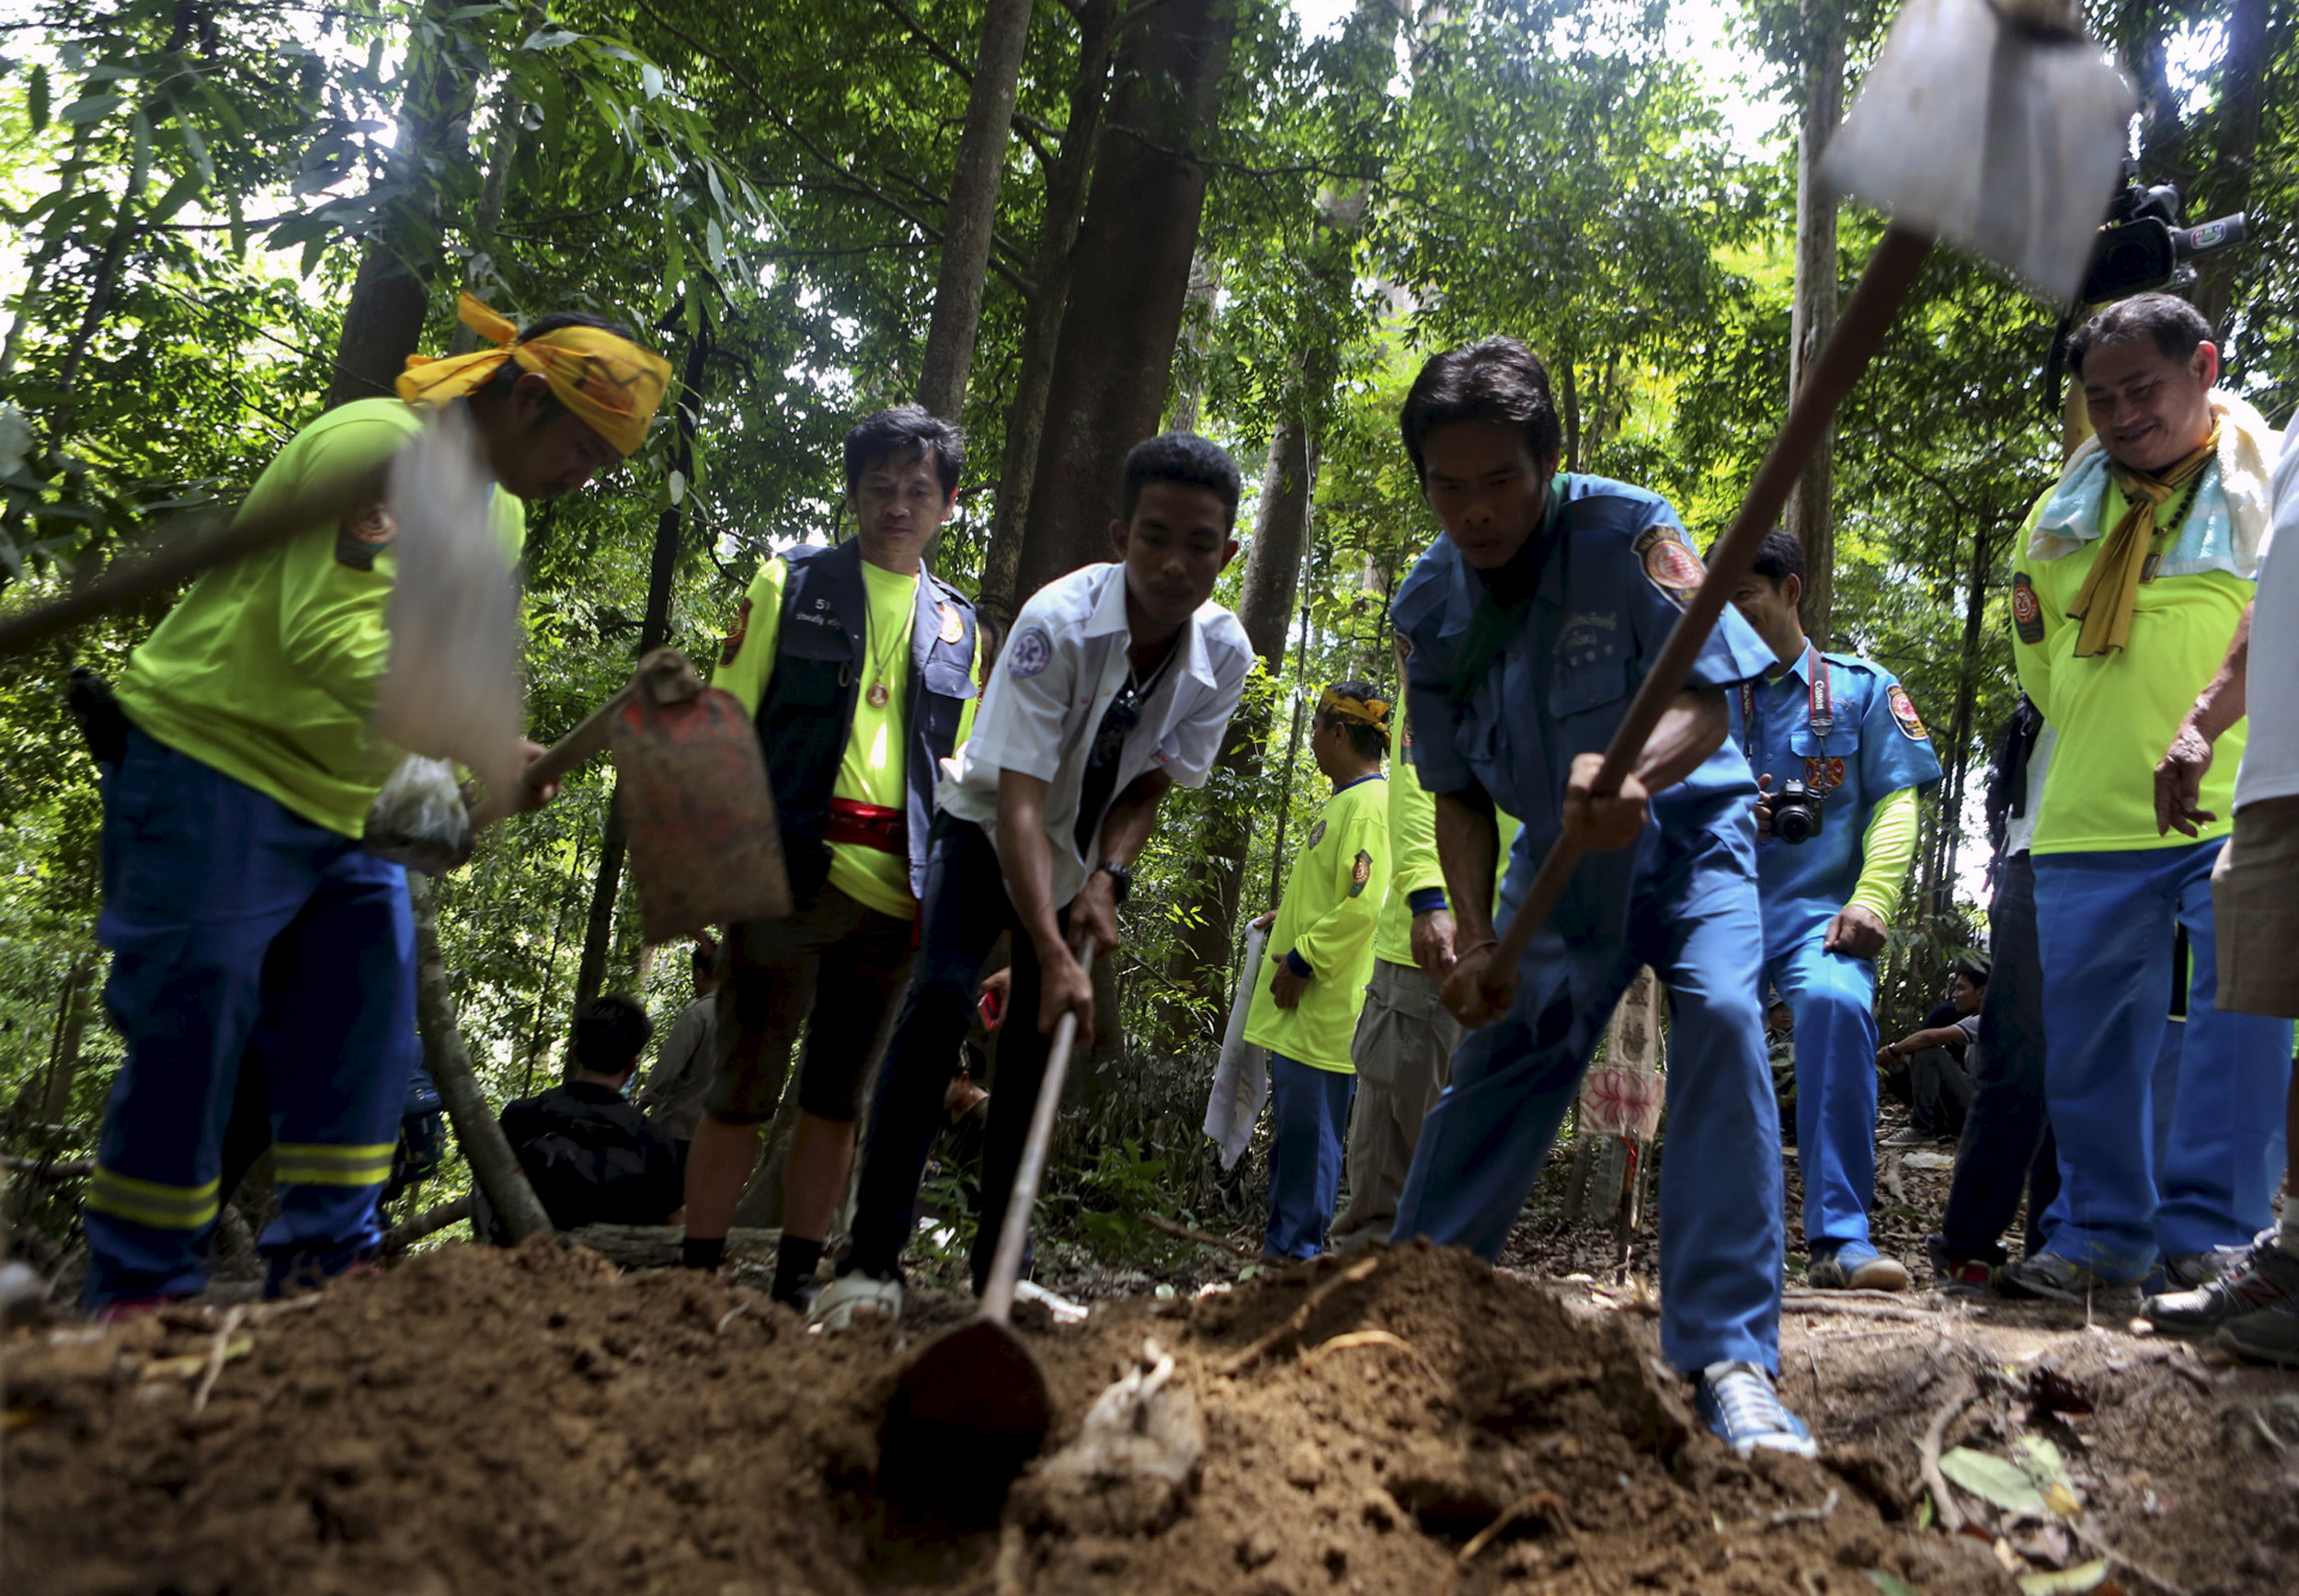 Rescue workers inspect a mass grave at an abandoned camp in a jungle in Thailand's southern Songkhla province on May 5, 2015